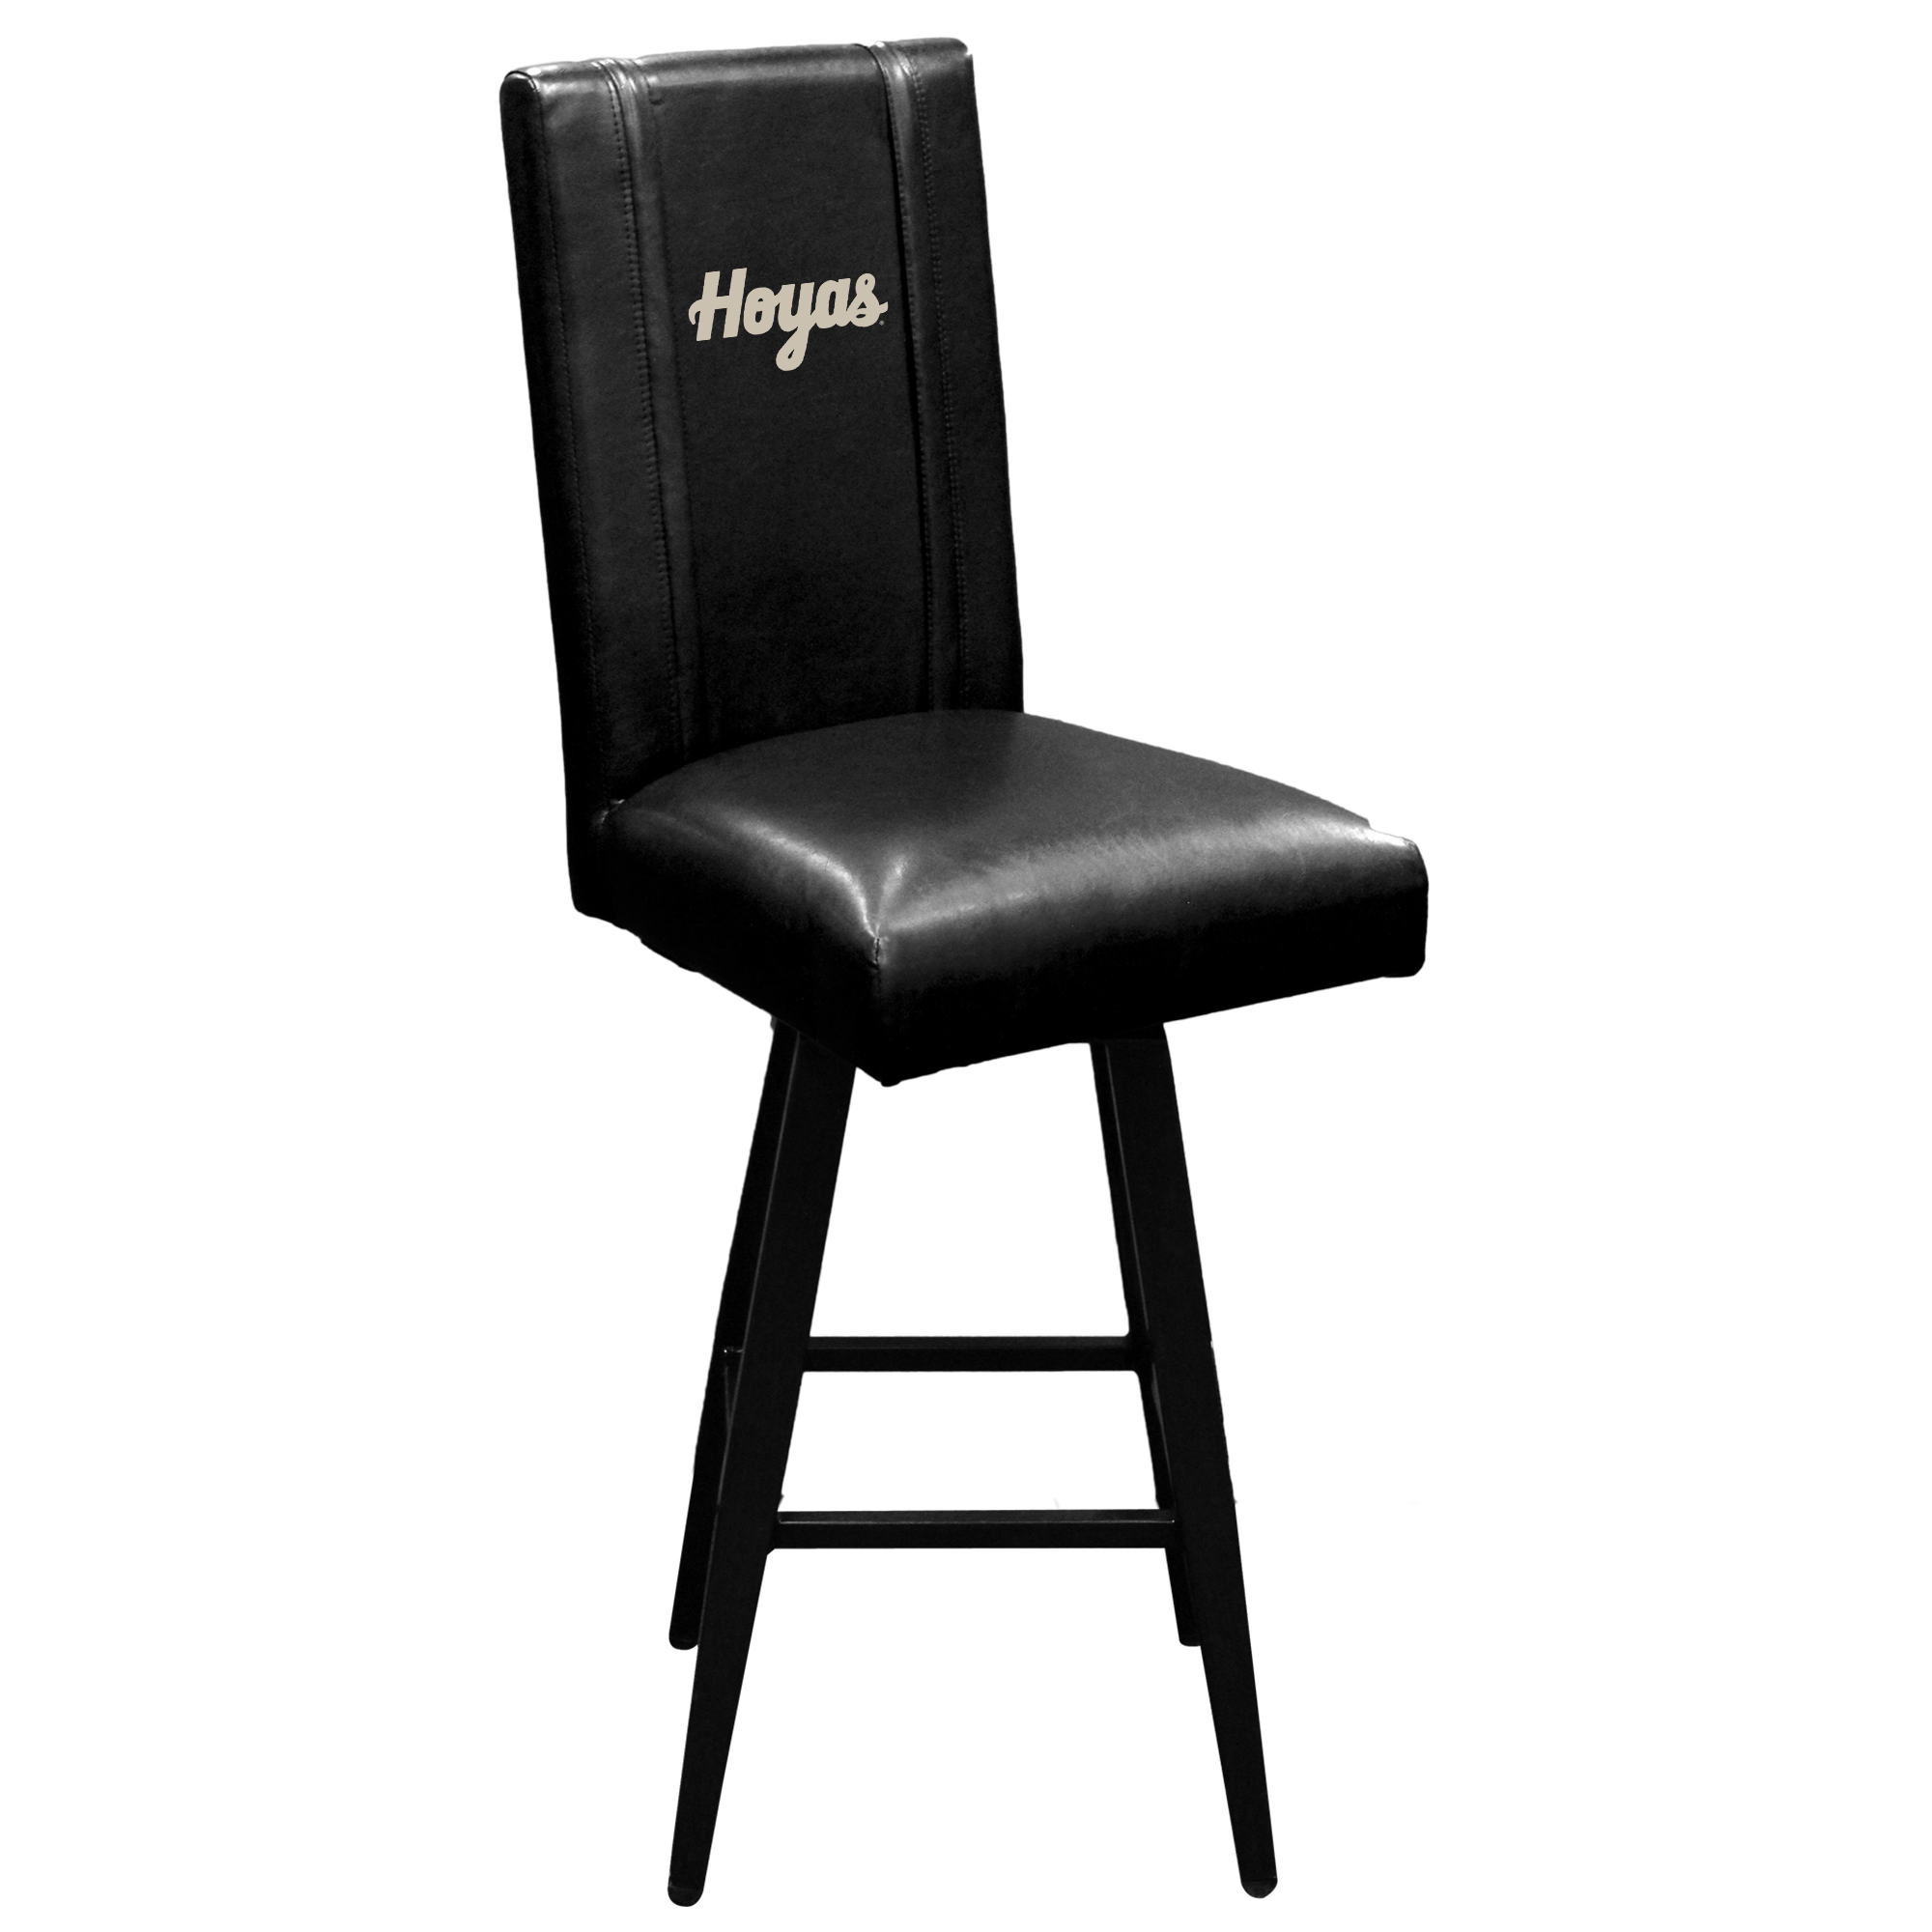 Swivel Bar Stool 2000 with Georgetown Hoyas Alternate